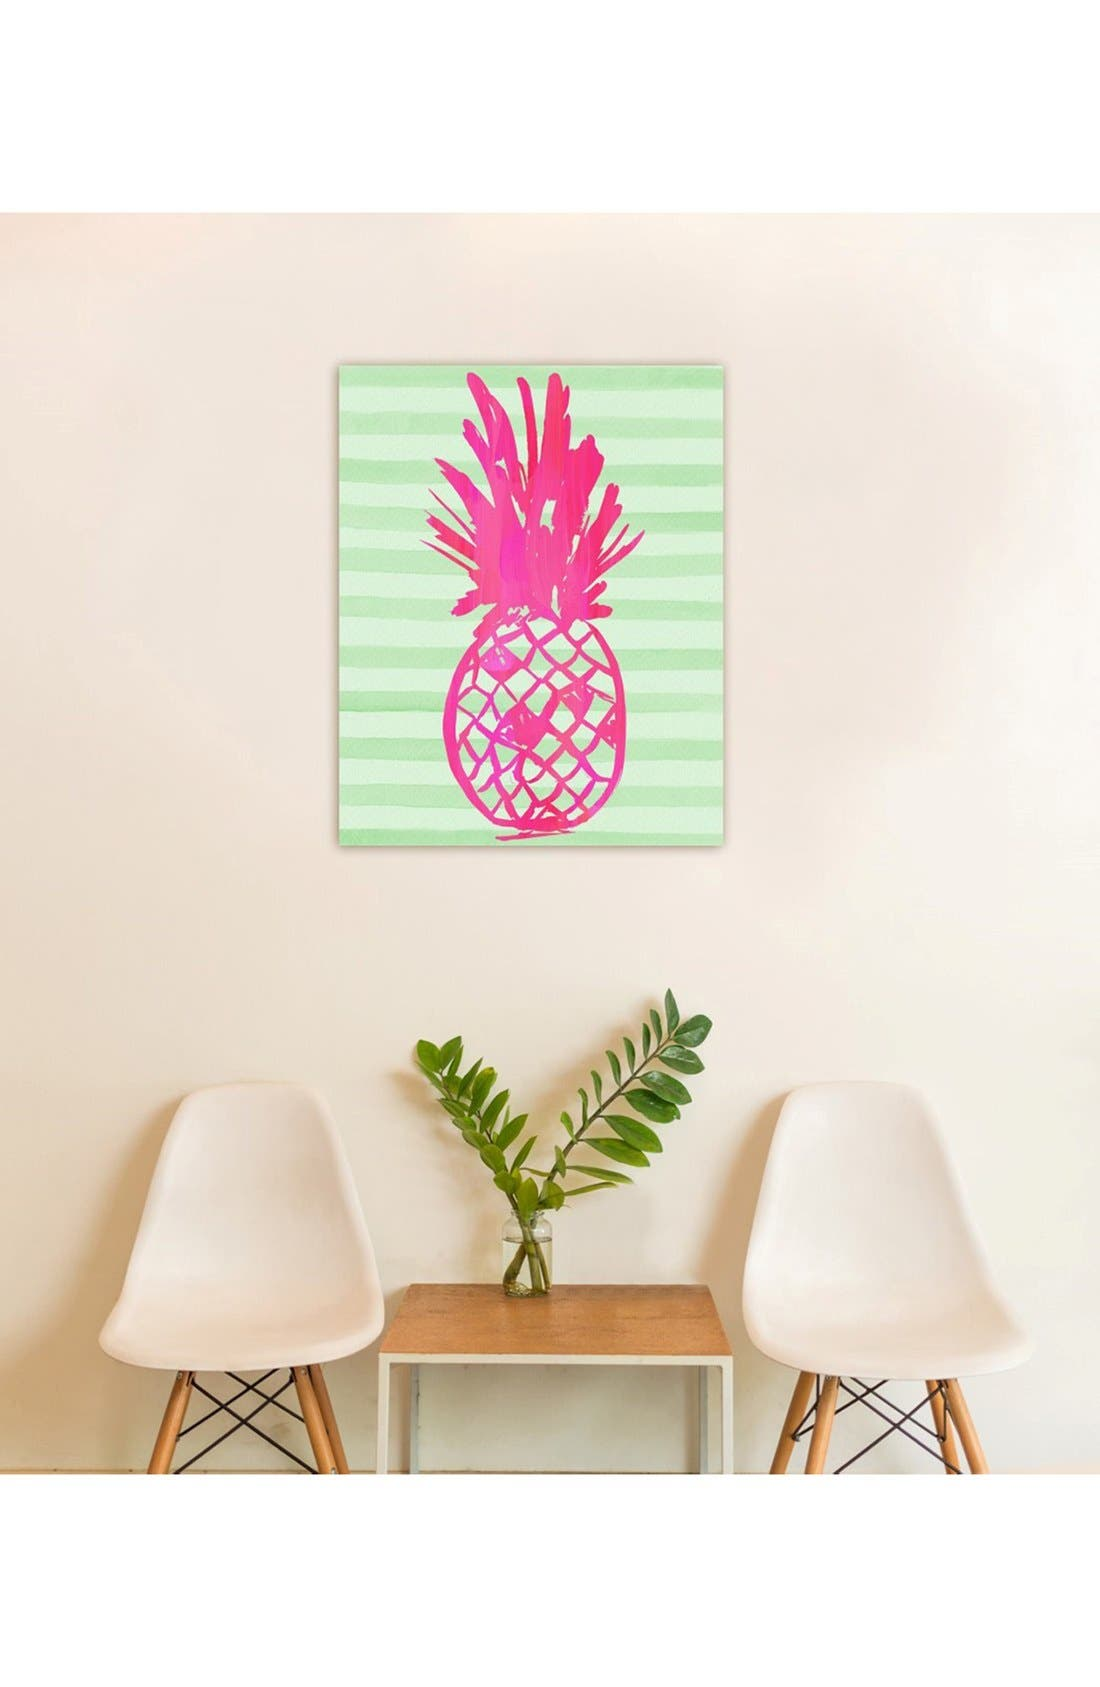 'Pink Pineapple' Hand Stretched Canvas Wall Art,                             Alternate thumbnail 2, color,                             650